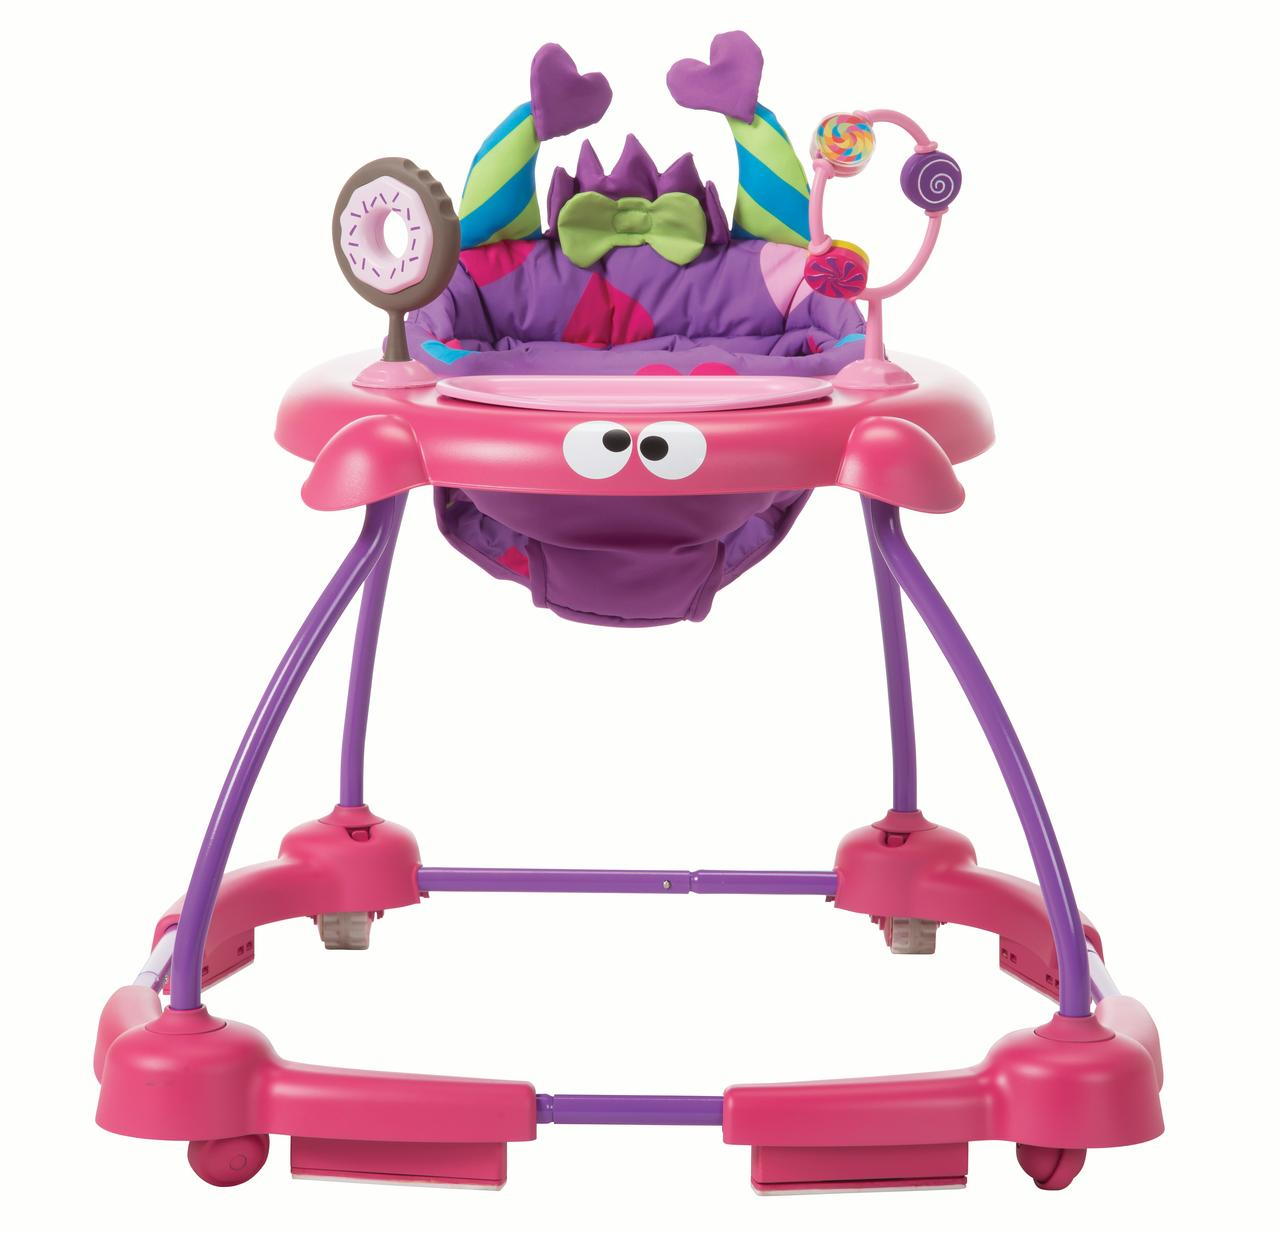 62c993d61 Cosco Simple Steps Baby Walker